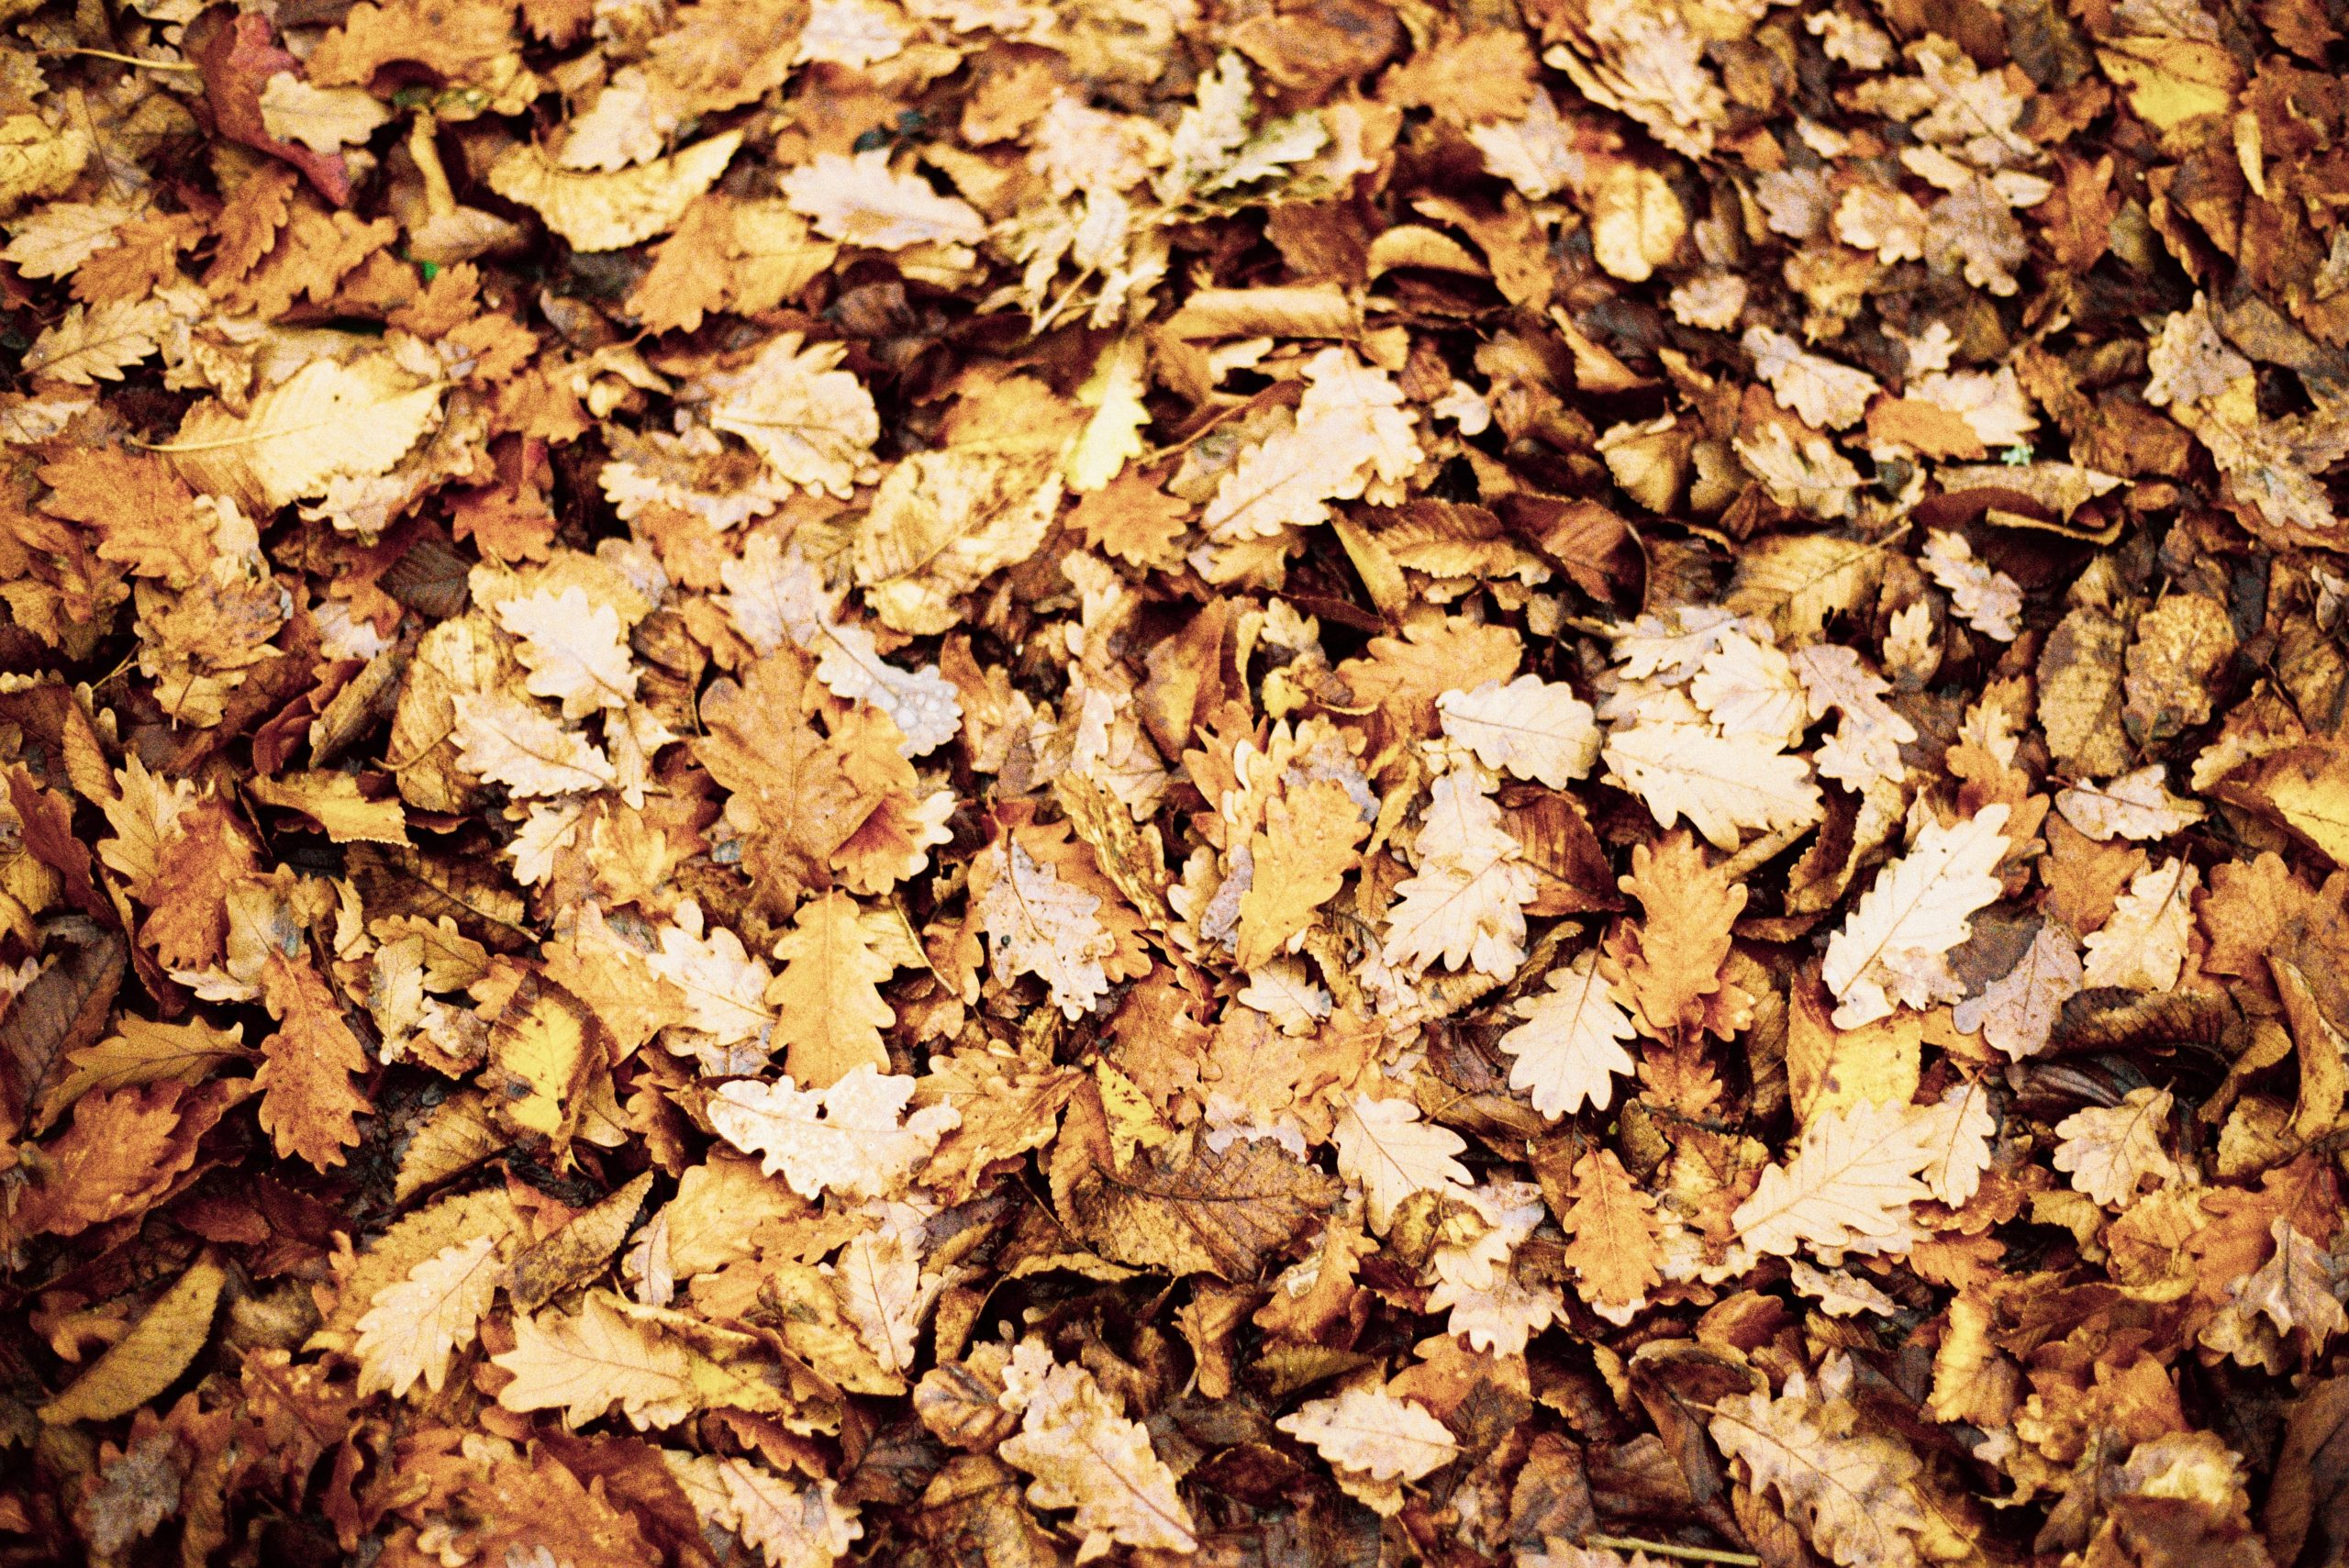 close-up-photo-of-dry-autumn-leaves-on-ground-2760324